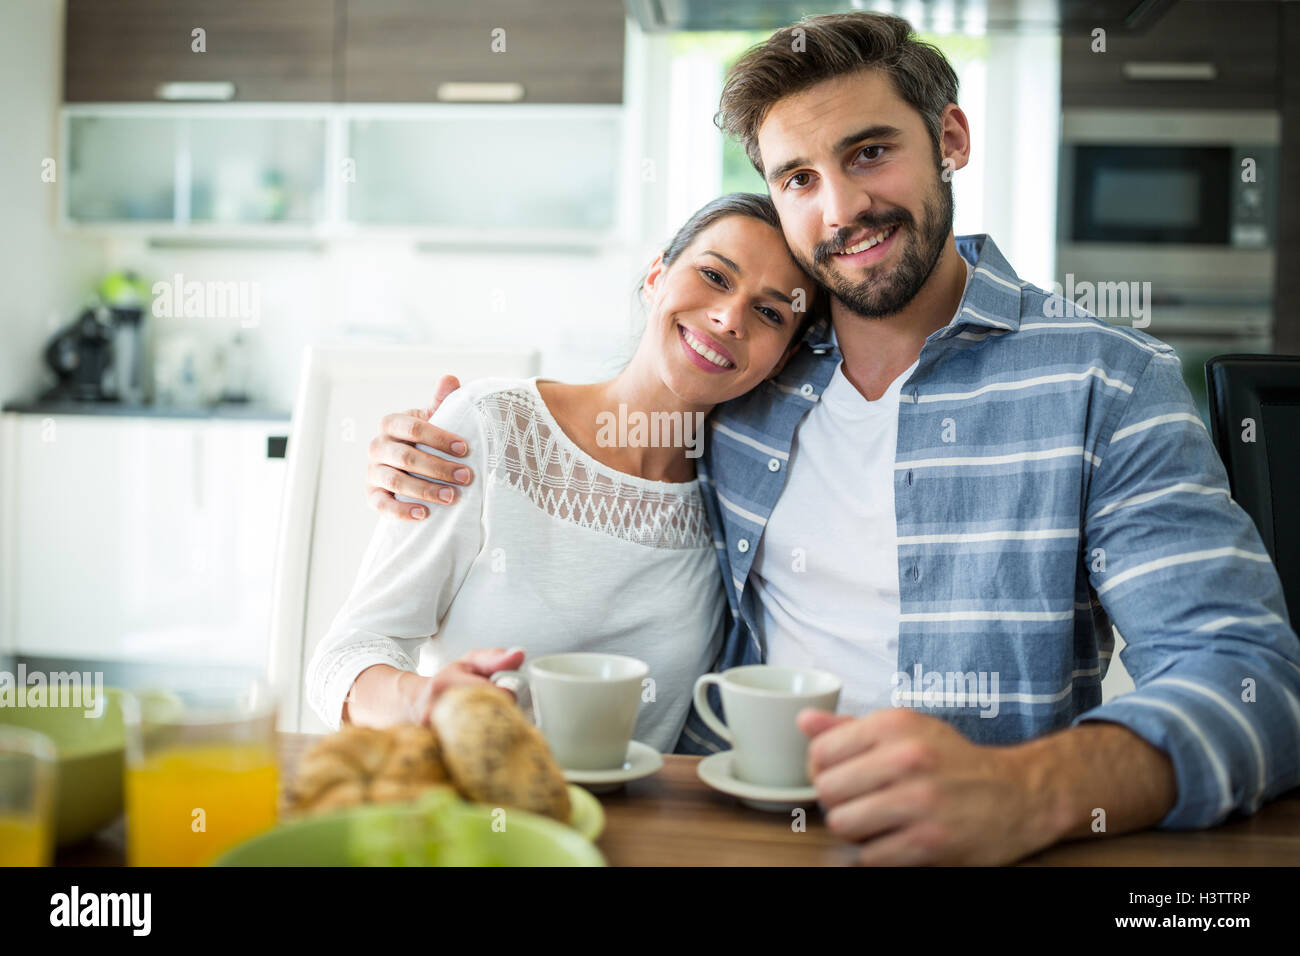 Portrait of couple sitting with arm around while having breakfast - Stock Image